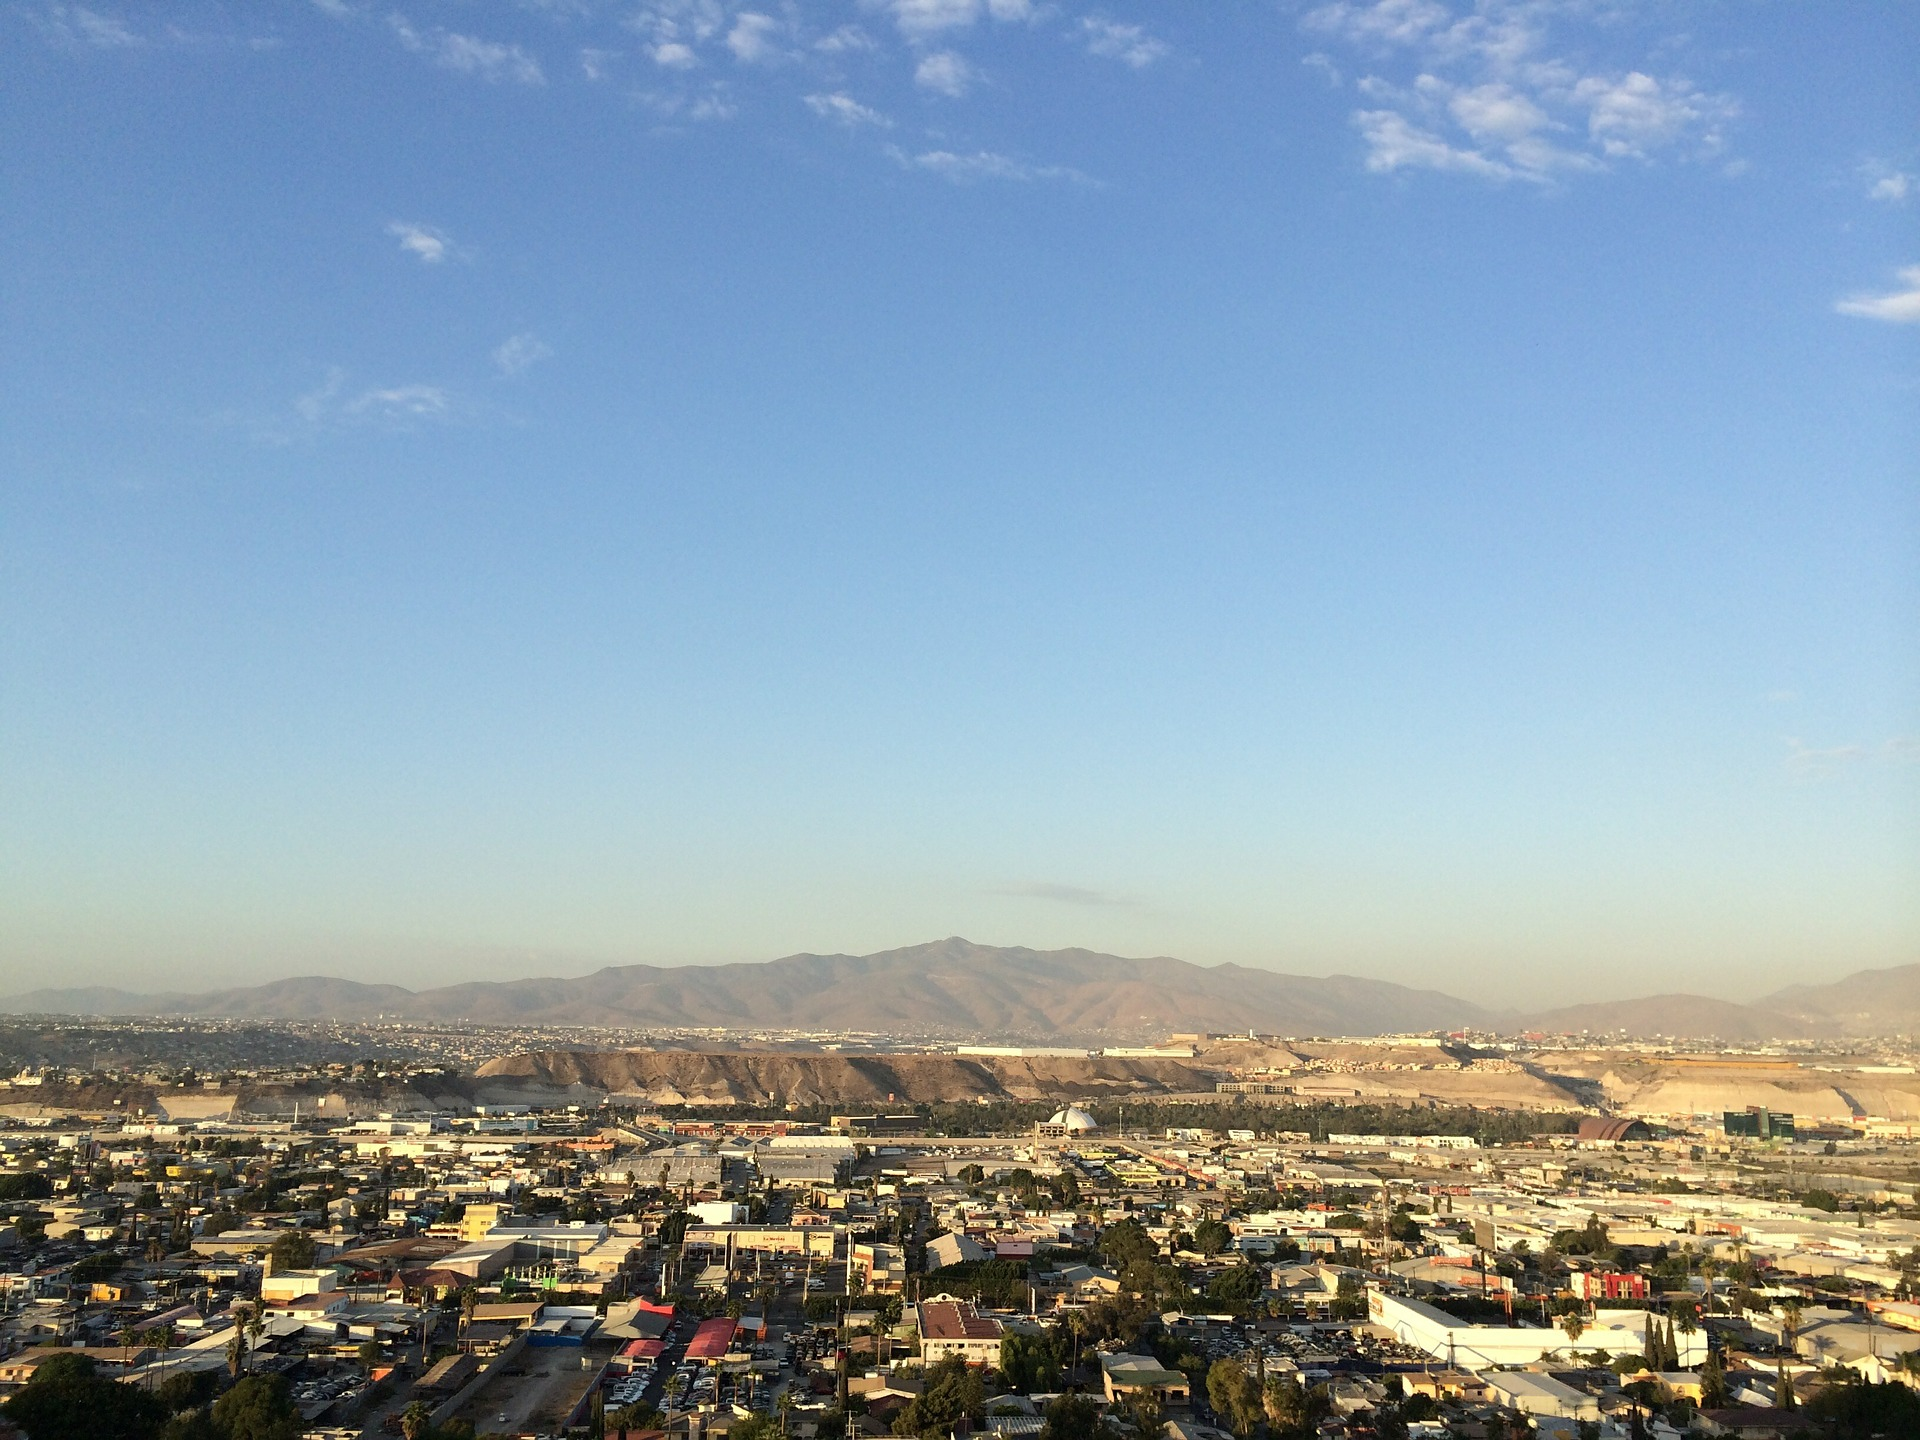 Tijuana: Mexico's Answer to Silicon Valley?